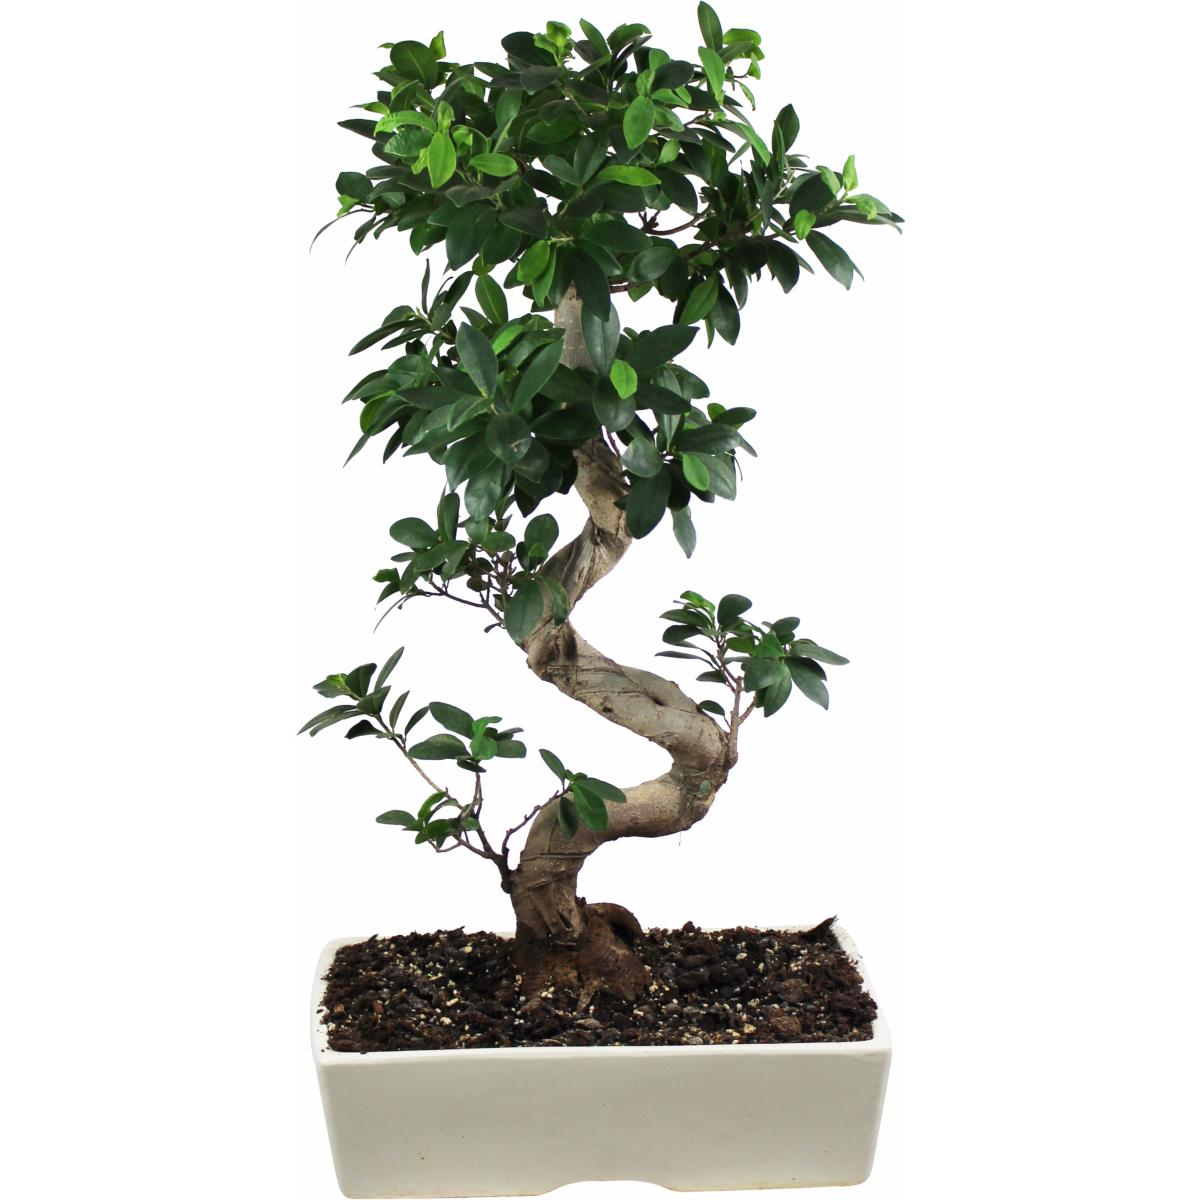 la fontaine fleurie bonsai ficus ginseng tokyo. Black Bedroom Furniture Sets. Home Design Ideas